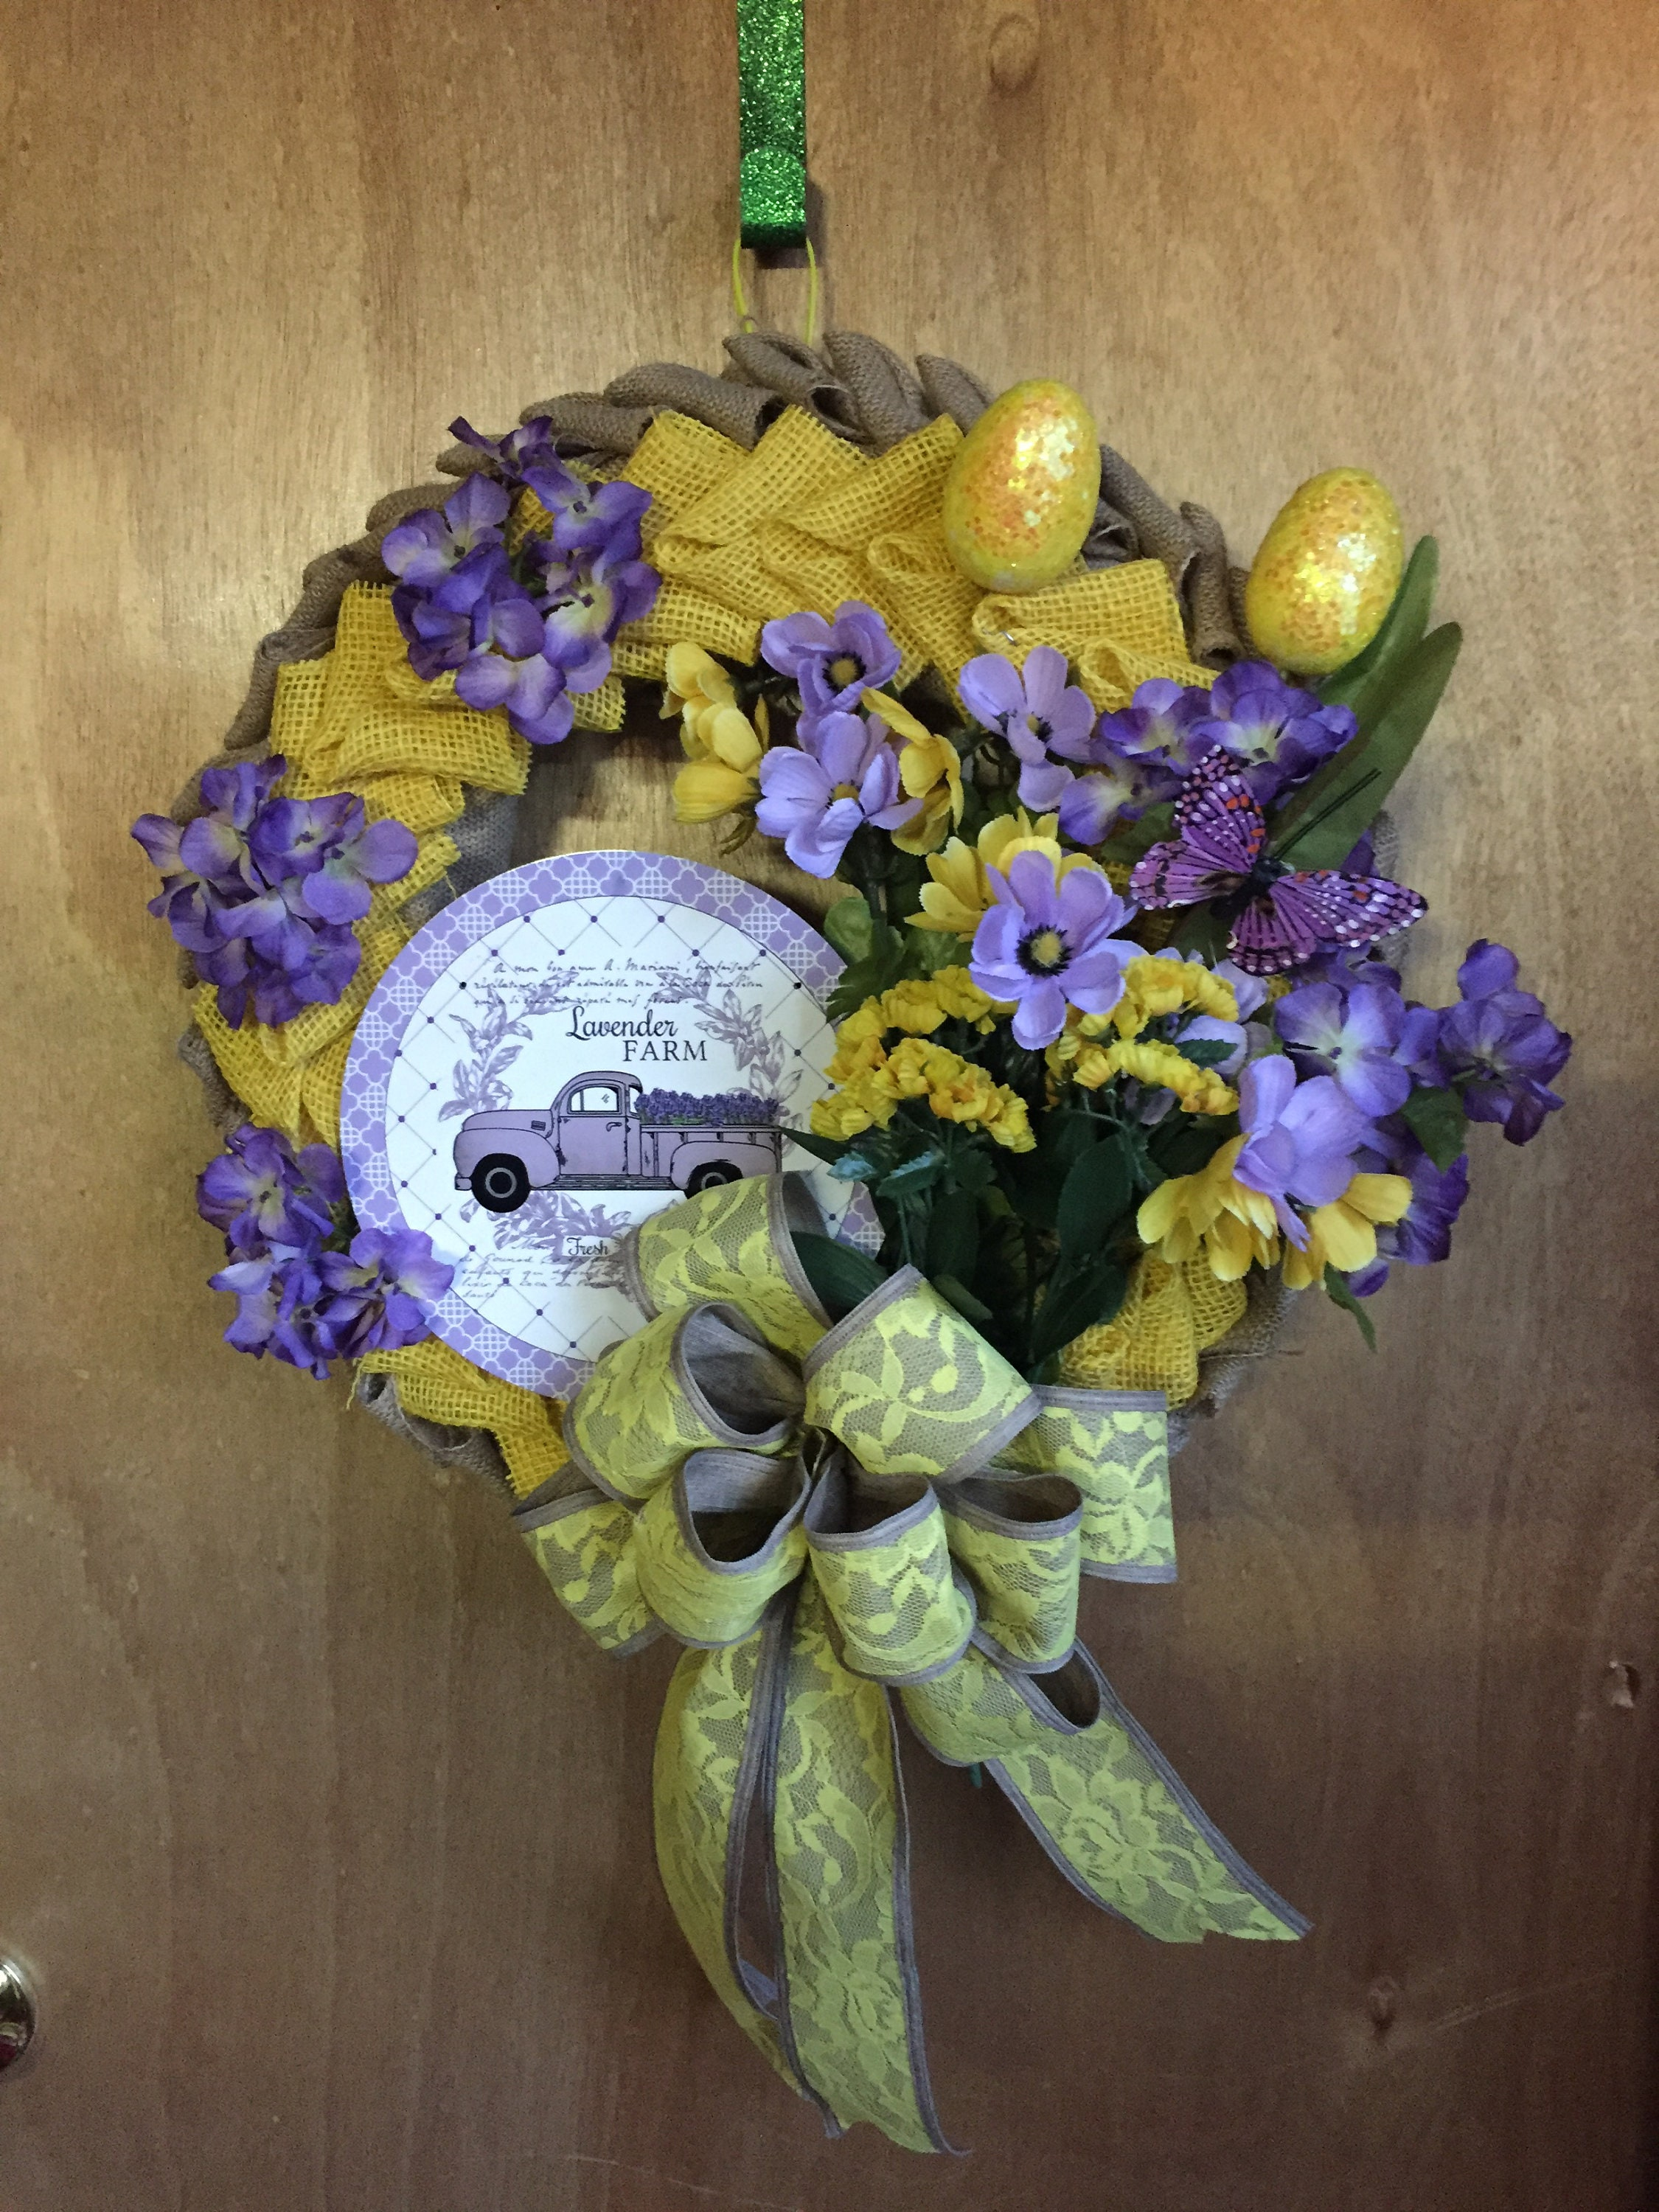 Lavender Truck Spring Wreath with Glittery Eggs and Butterflies